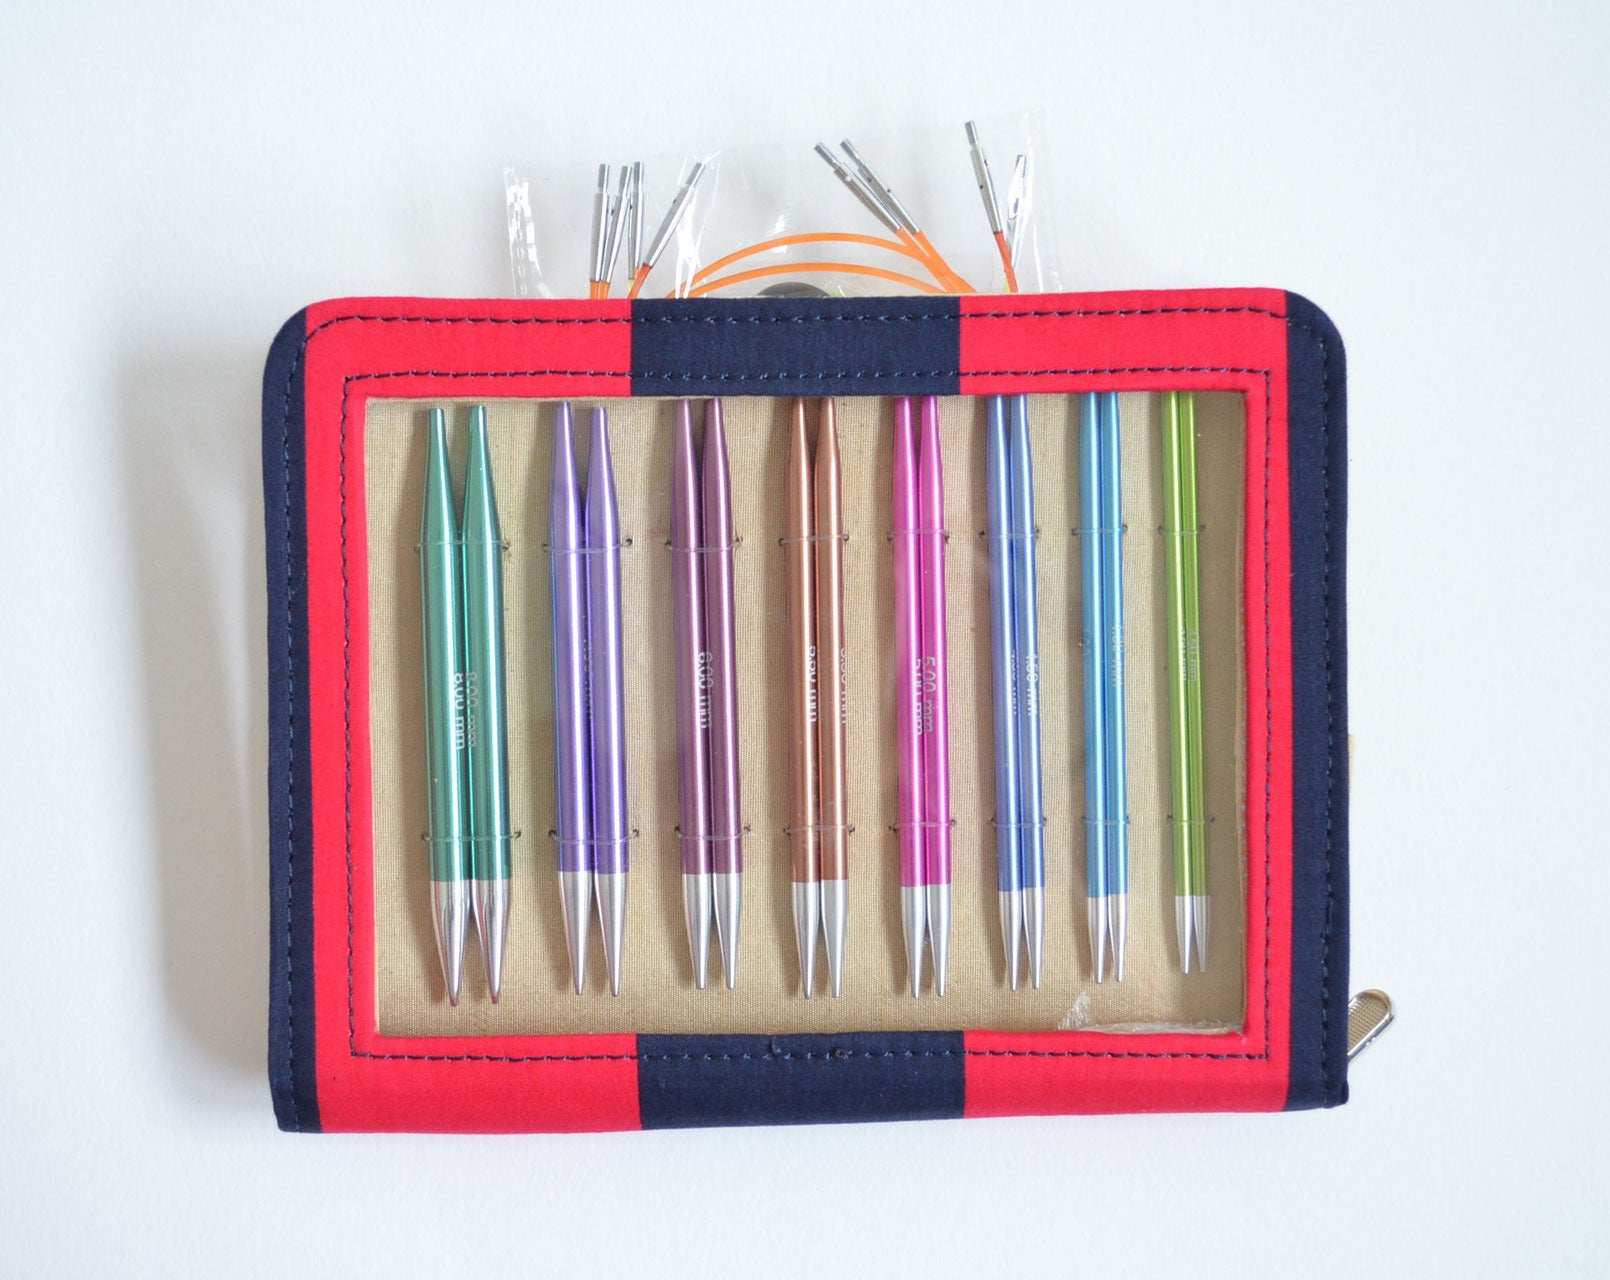 knit pro zing set deluxe